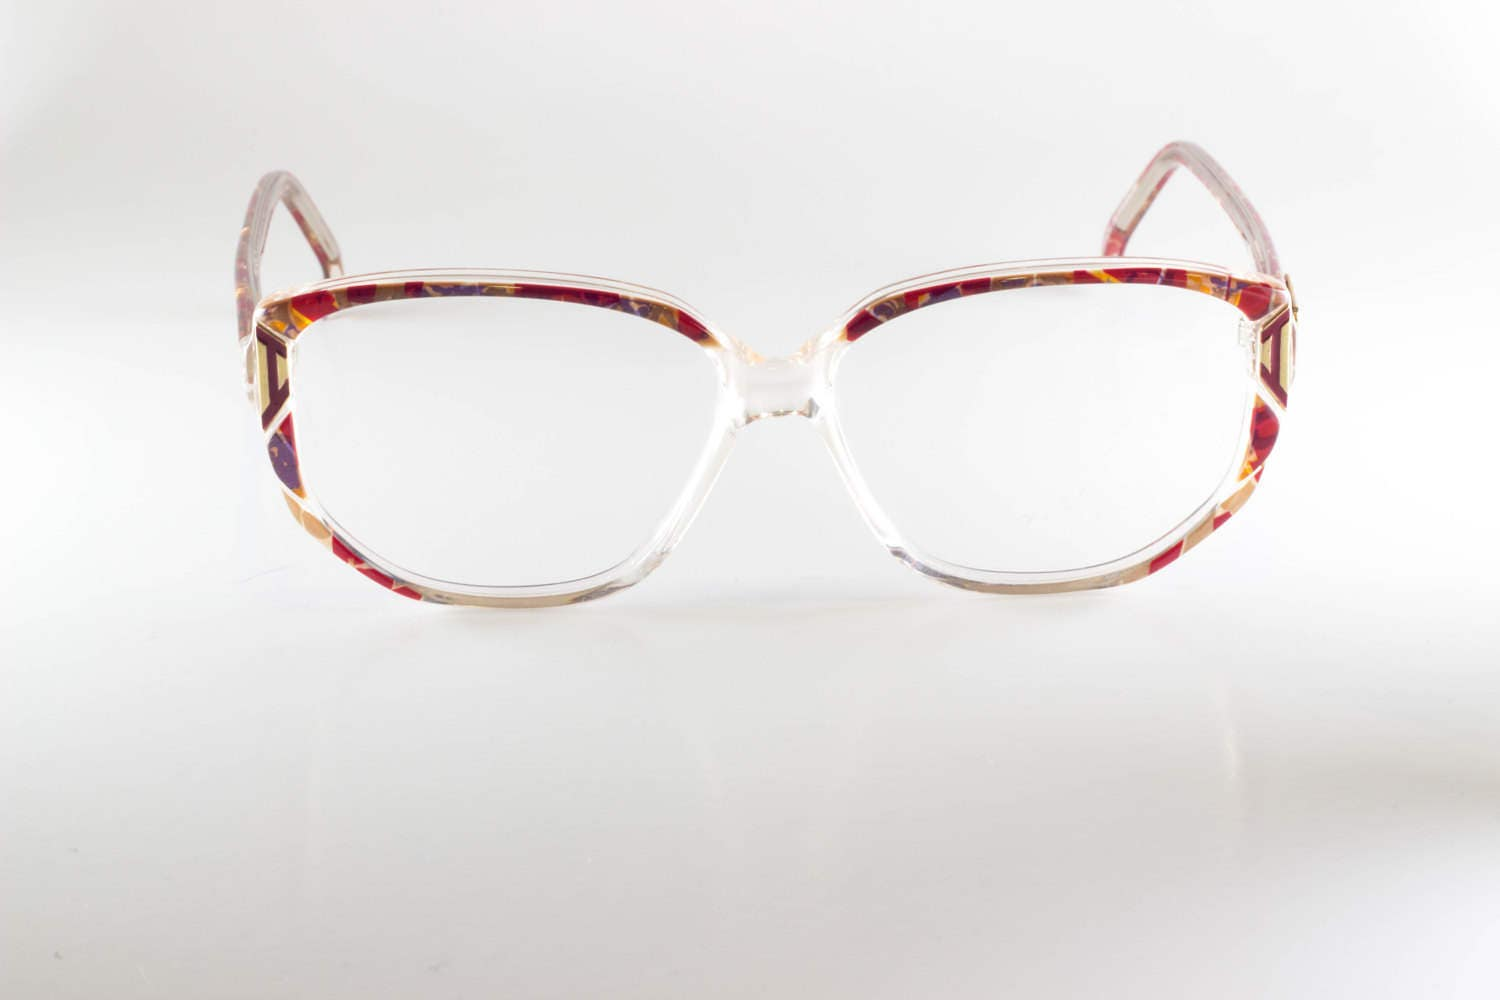 9b89a9e8a3 Gerard Pasquier Glasses Gp66 439 Made In France CE Unisex 55-13-135 Vintage